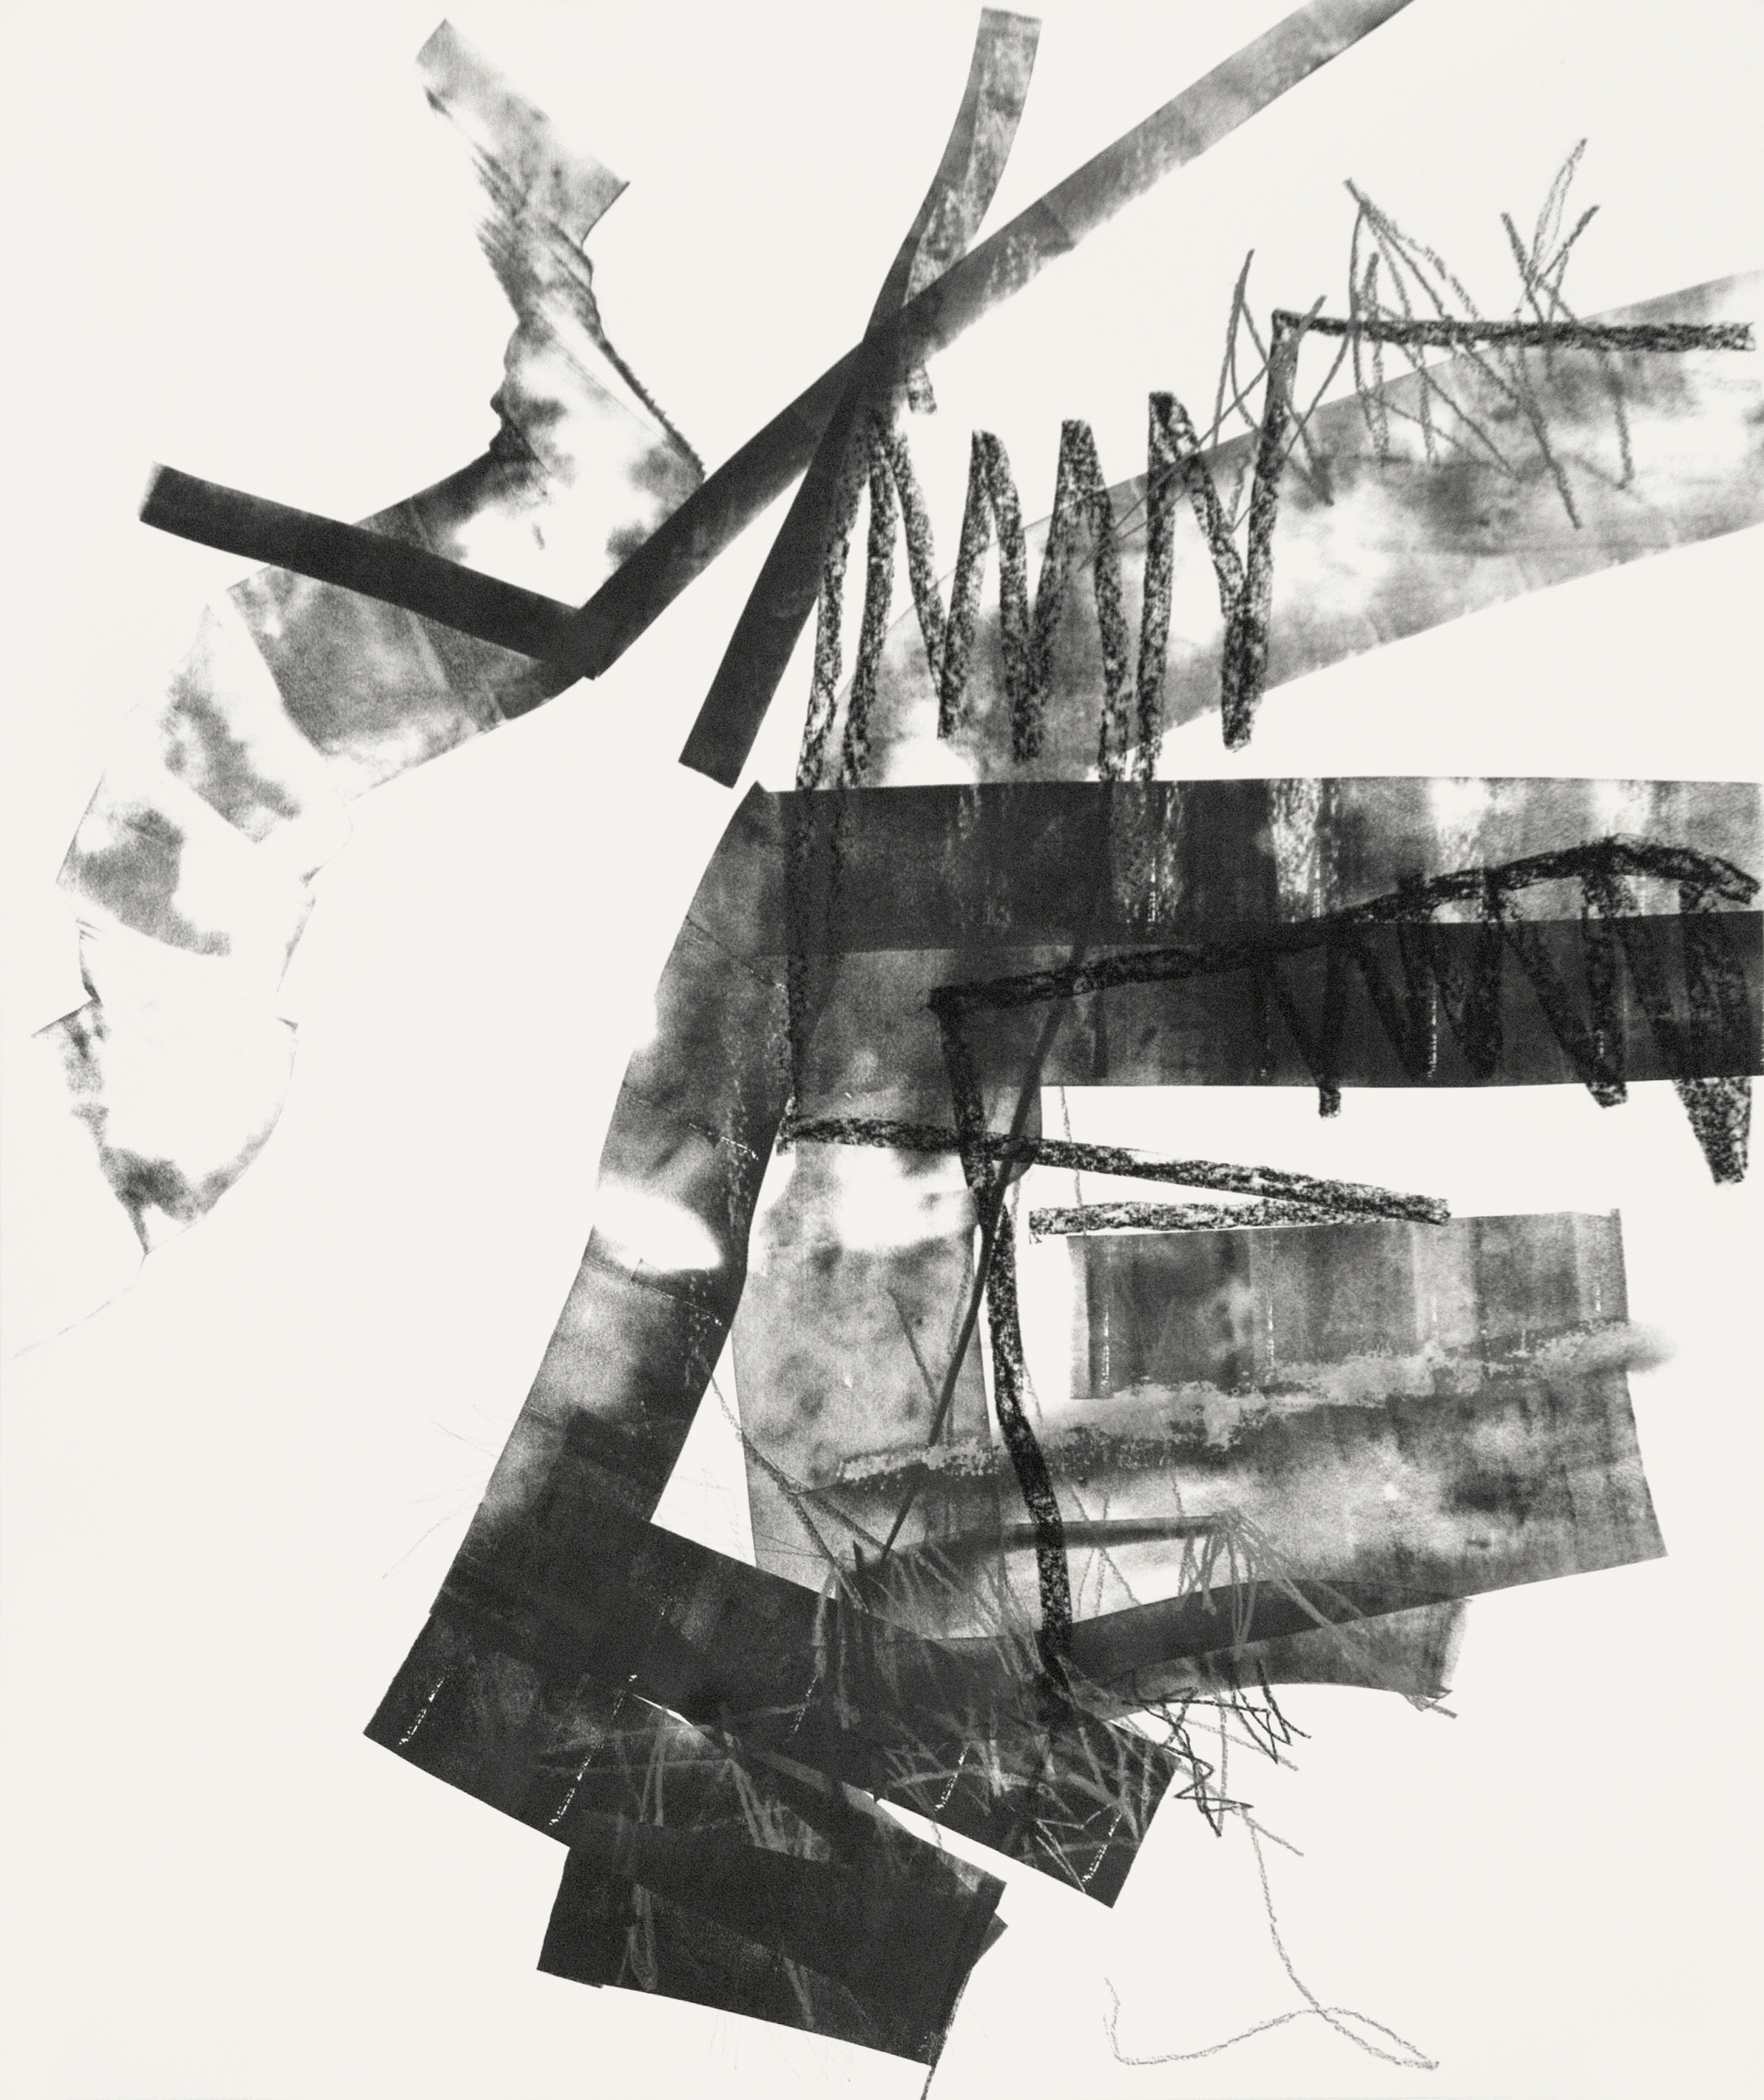 Untitled (rdl.10.3), 2010 ink, charcoal, graphite on paper 50 x 42 inches